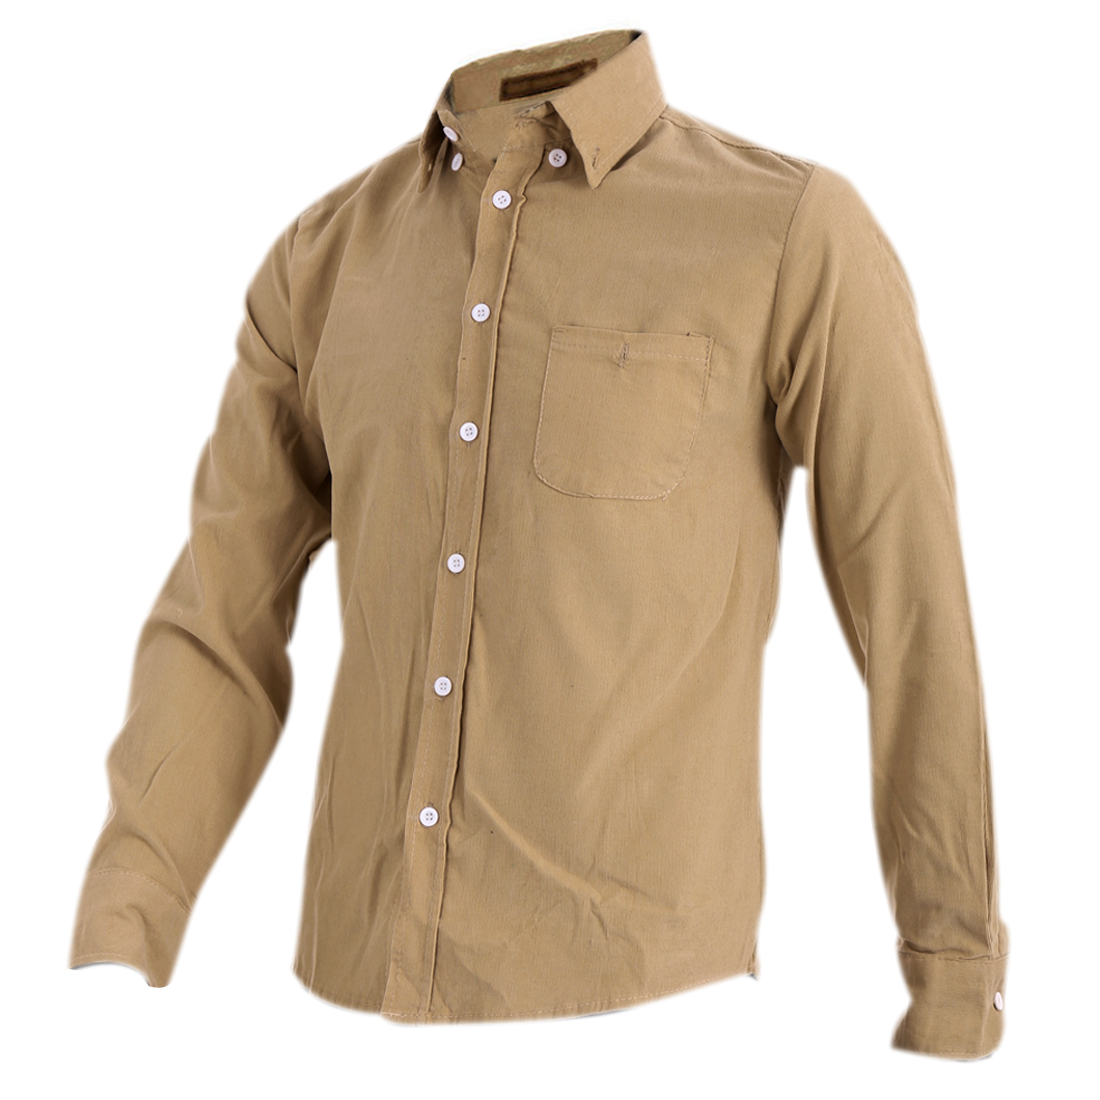 Mens Chic Khaki Point Collar Long Sleeve Button Down Front Spring Shirt M